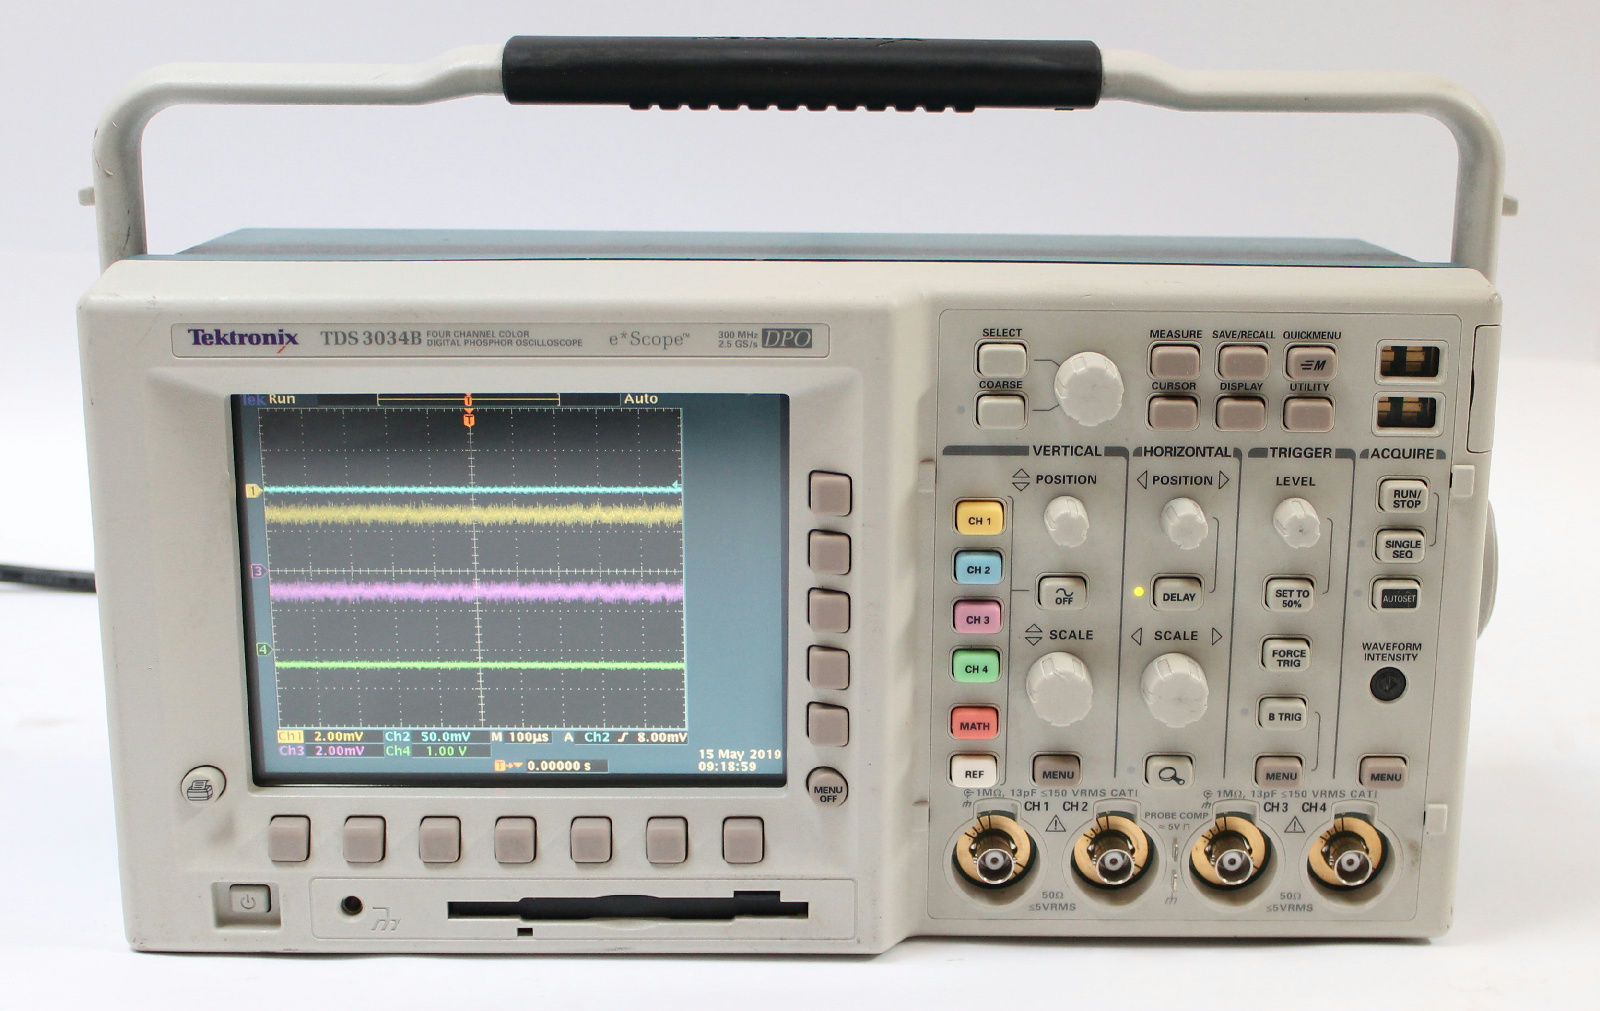 Tektronix TDS3034B 300 MHz 4 Channel 2 5 GSa/s DPO Digital Phosphor  Oscilloscope